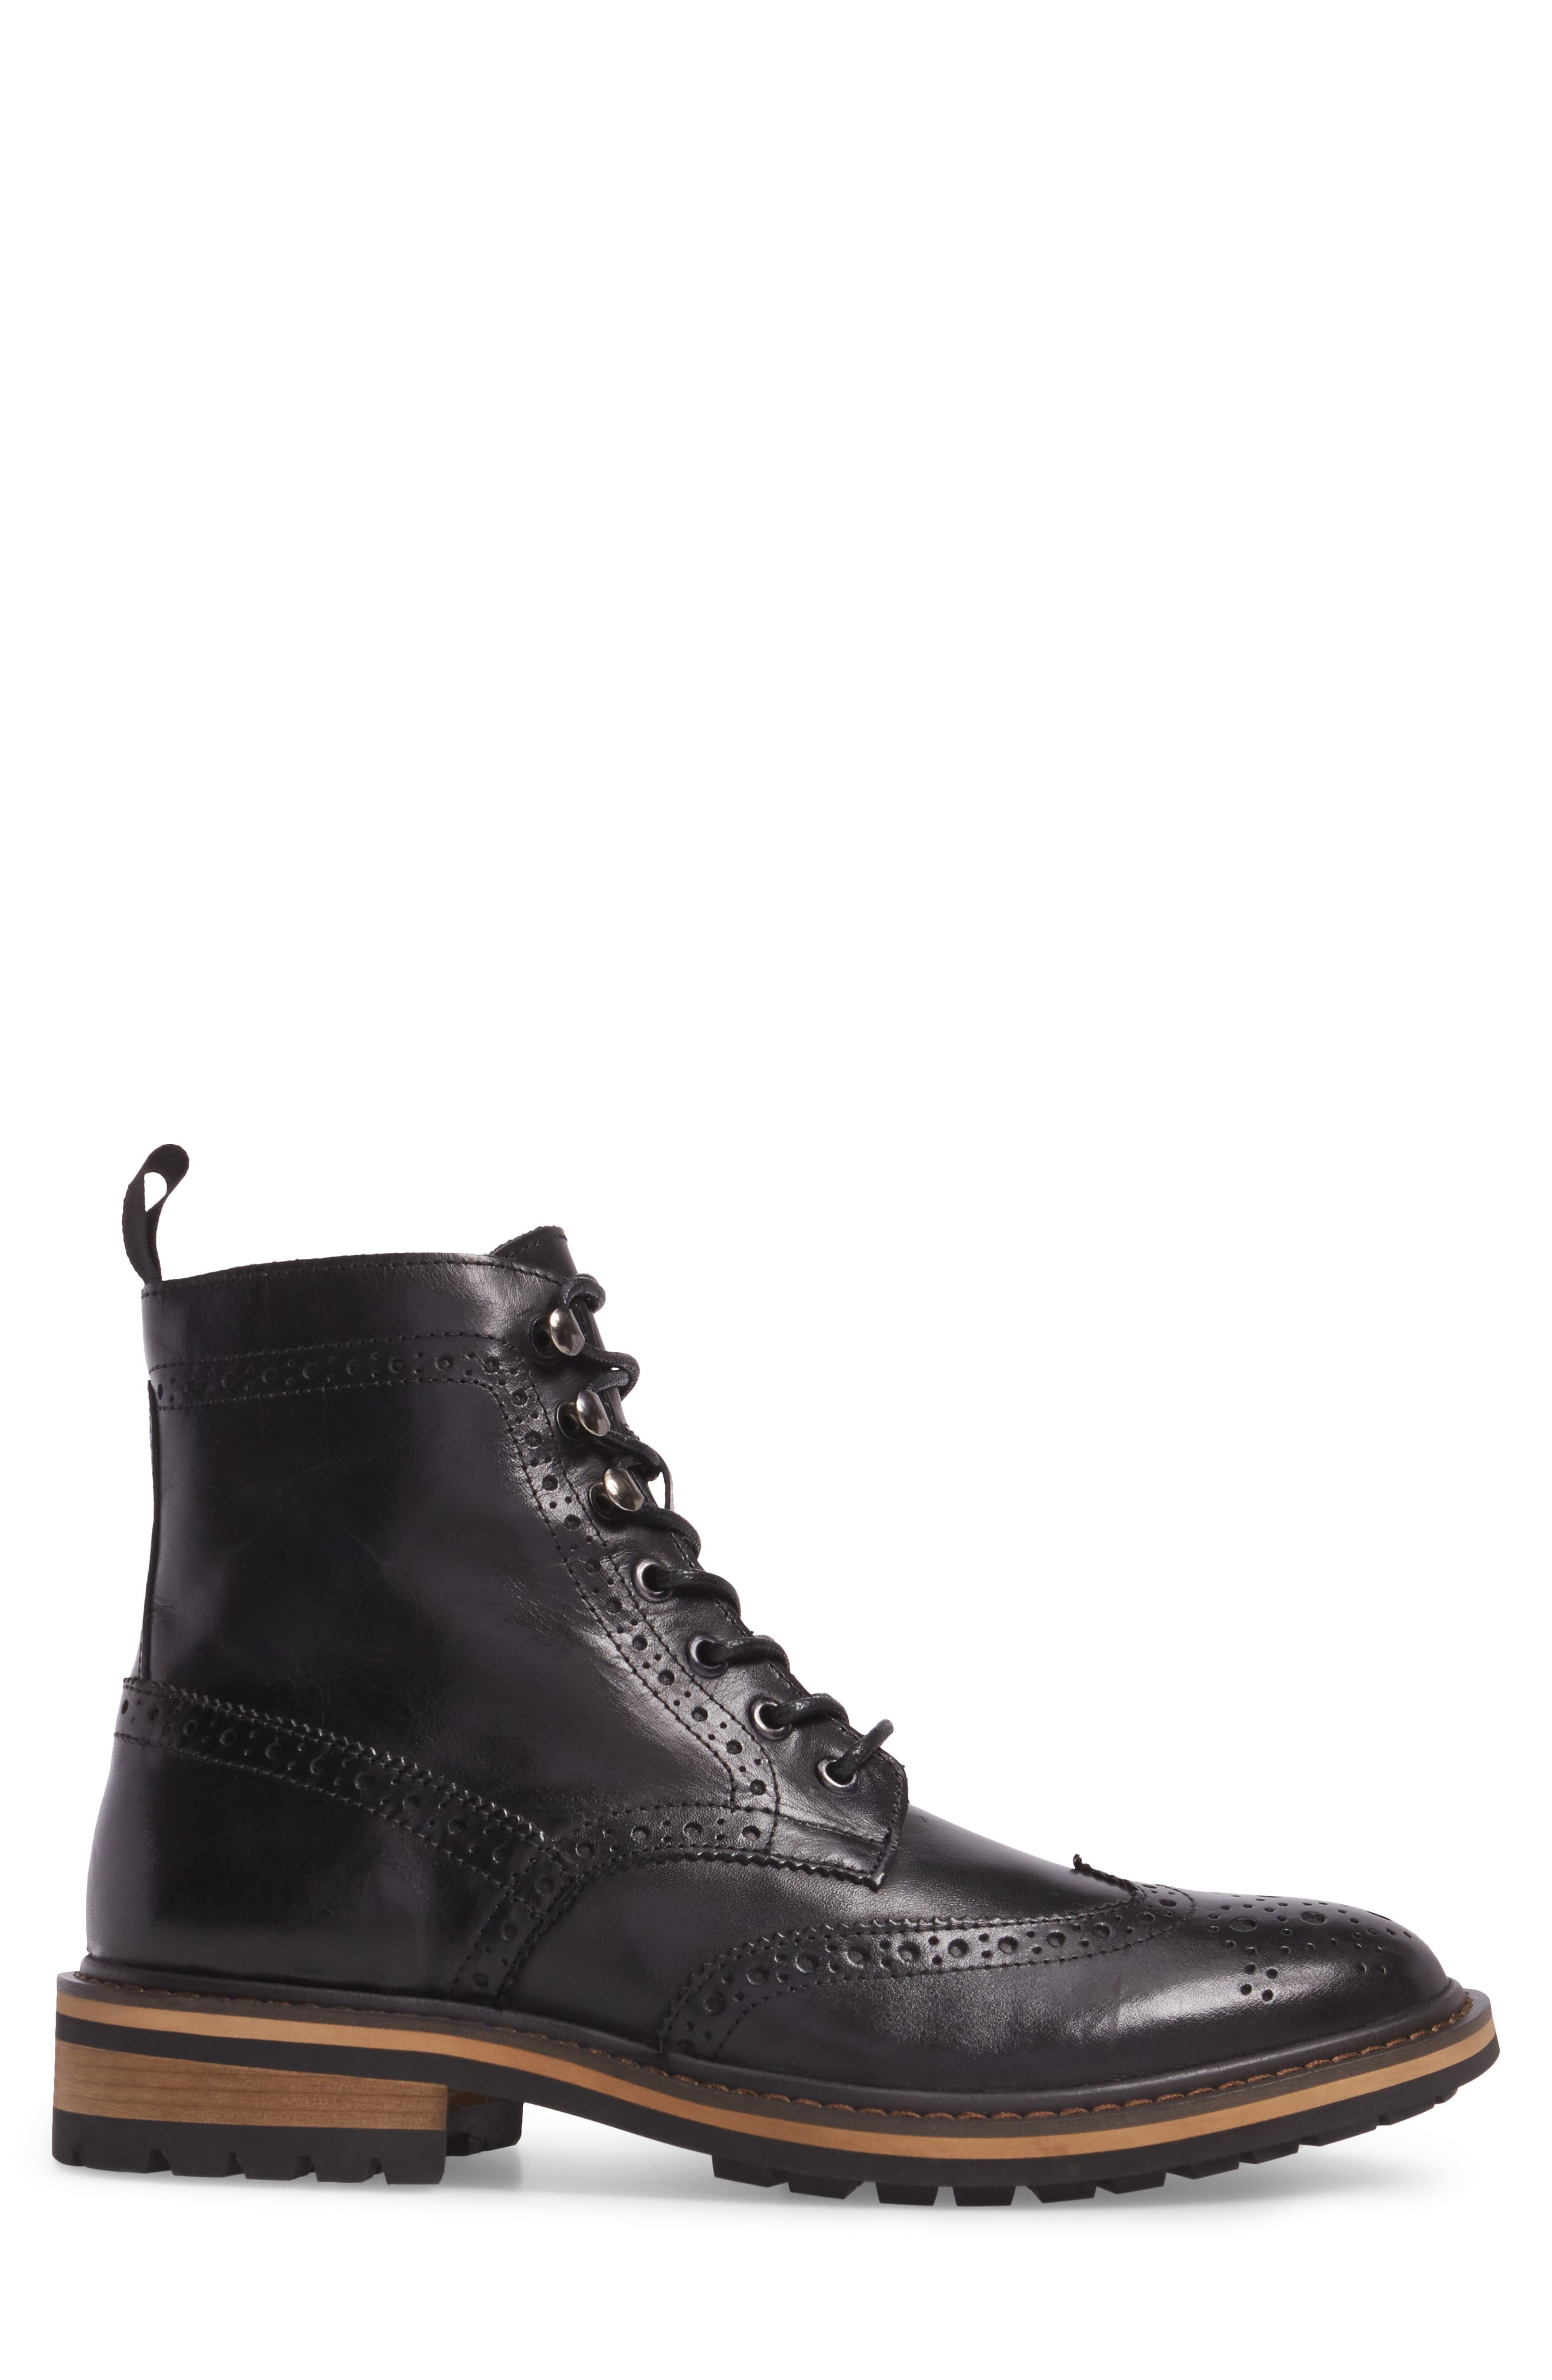 Grange Wingtip Boot,                             Alternate thumbnail 3, color,                             Black Smooth Leather